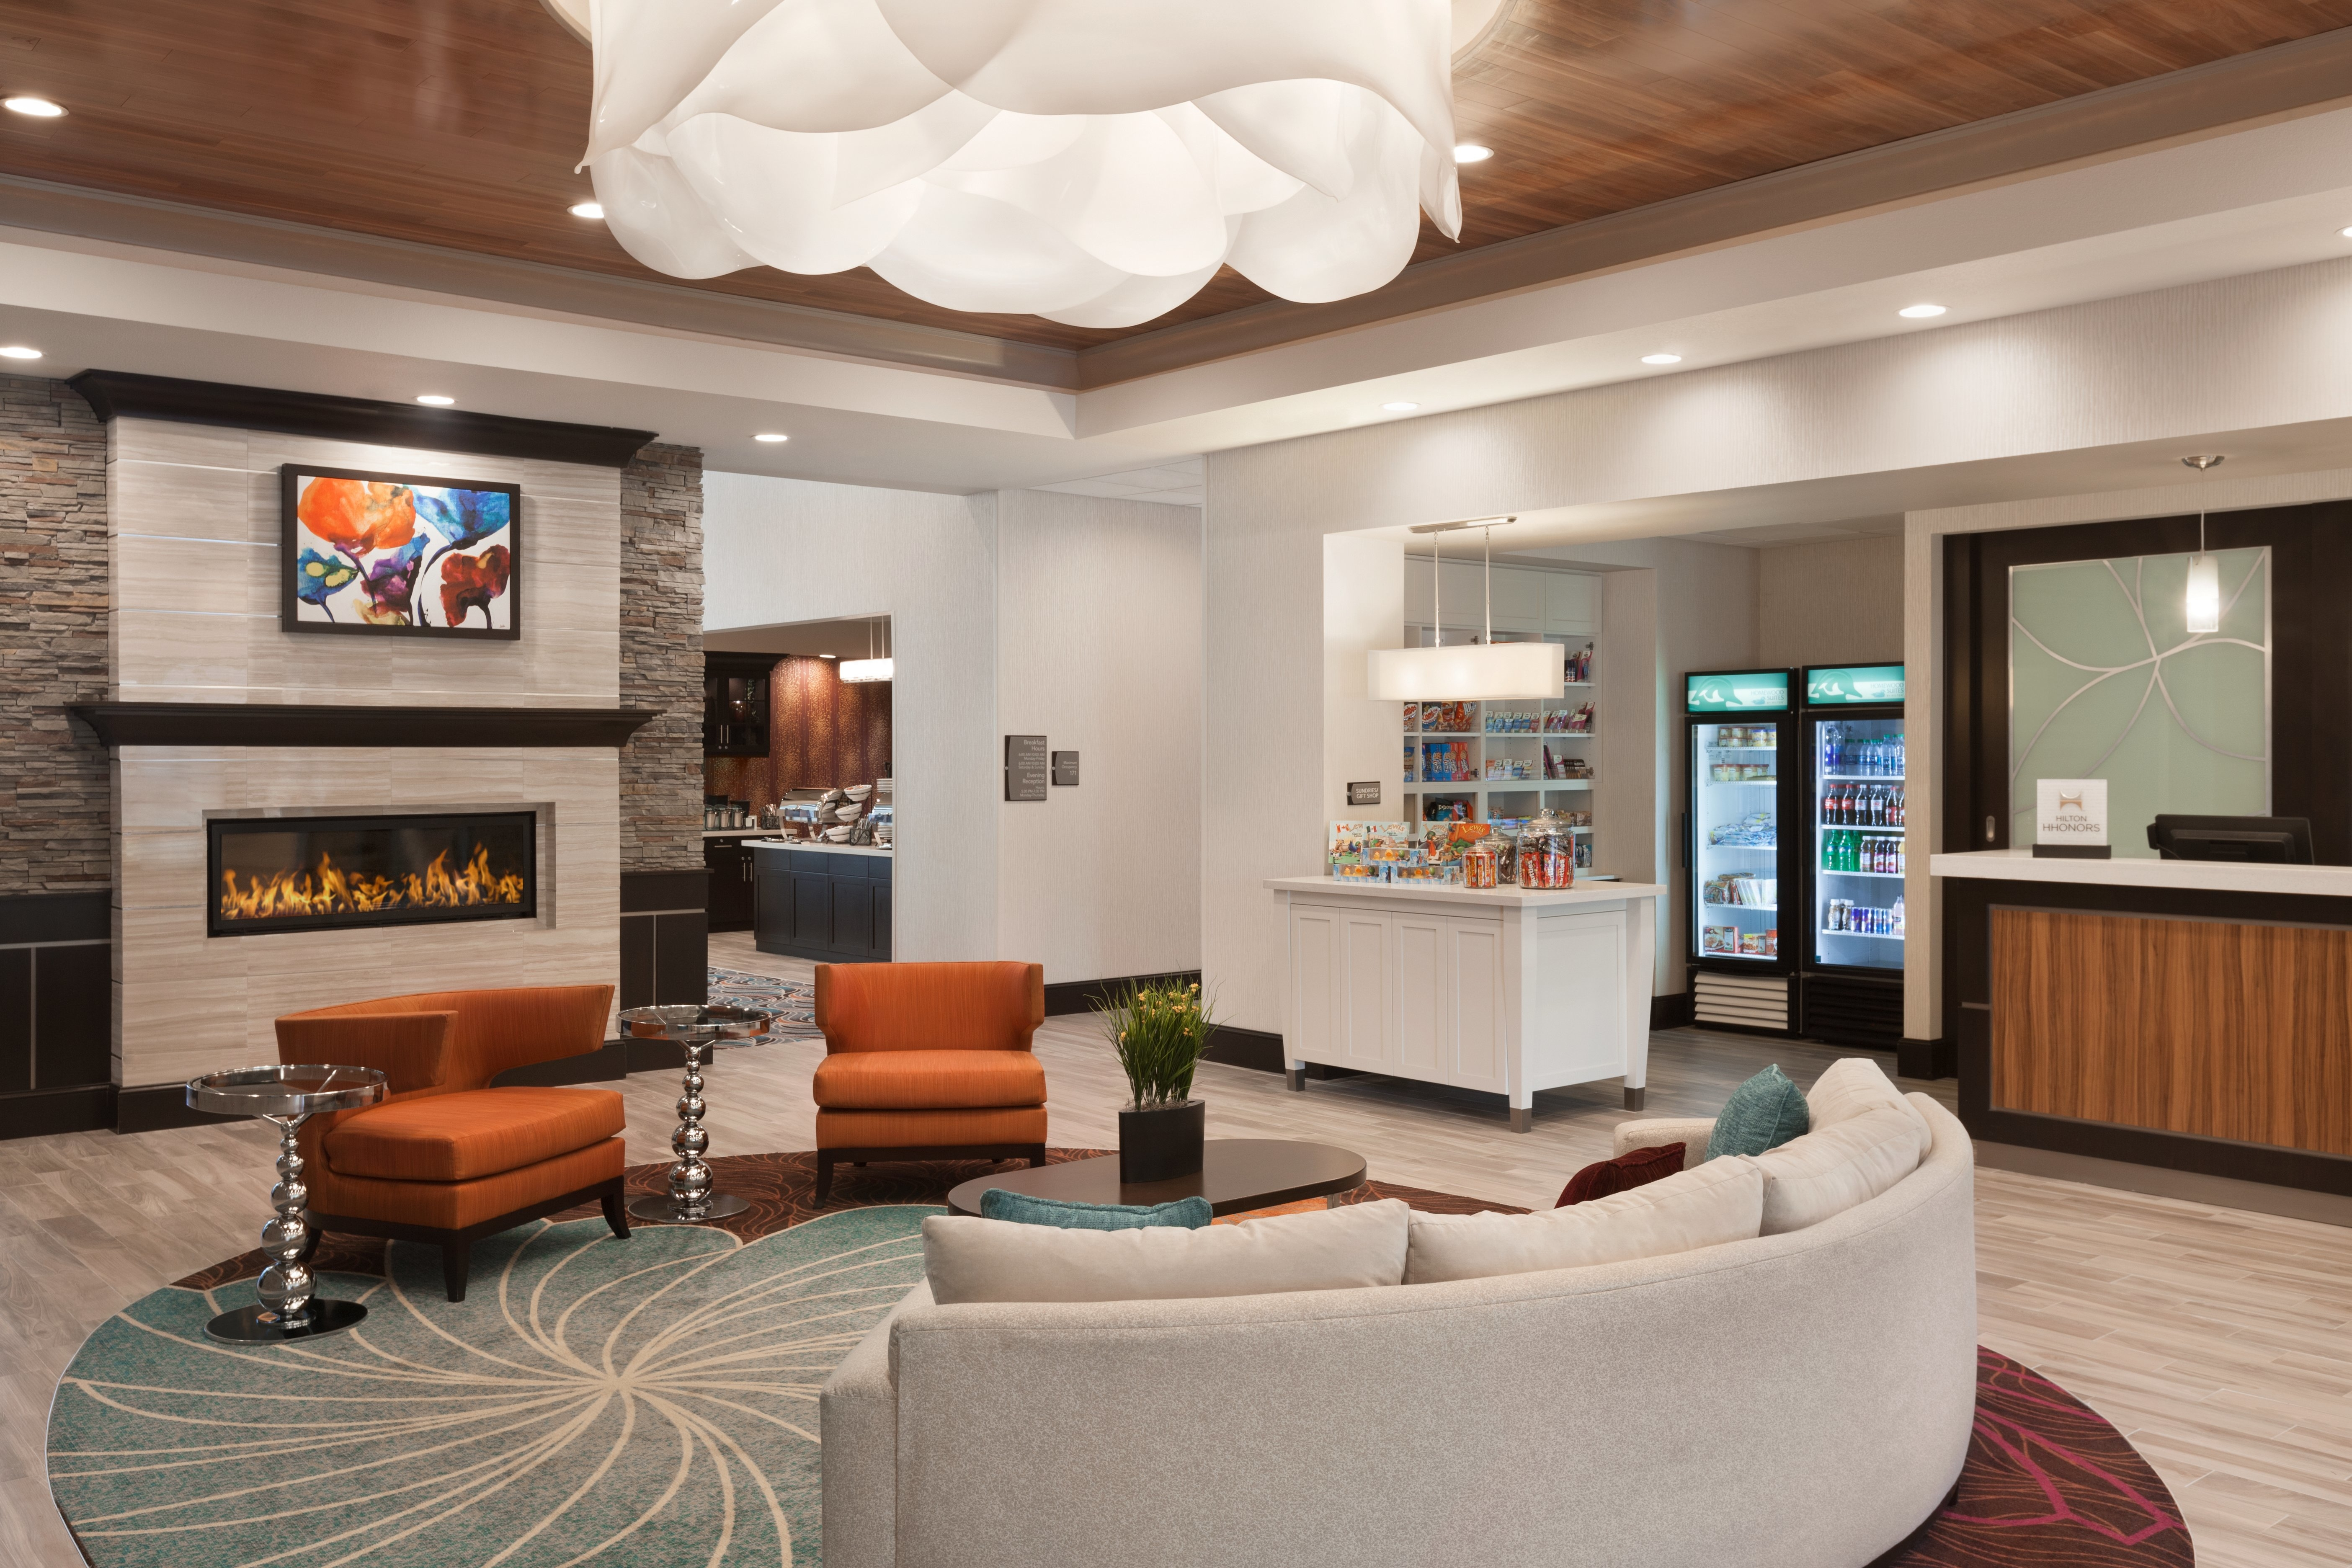 Homewood Suites by Hilton North Houston/Spring image 9